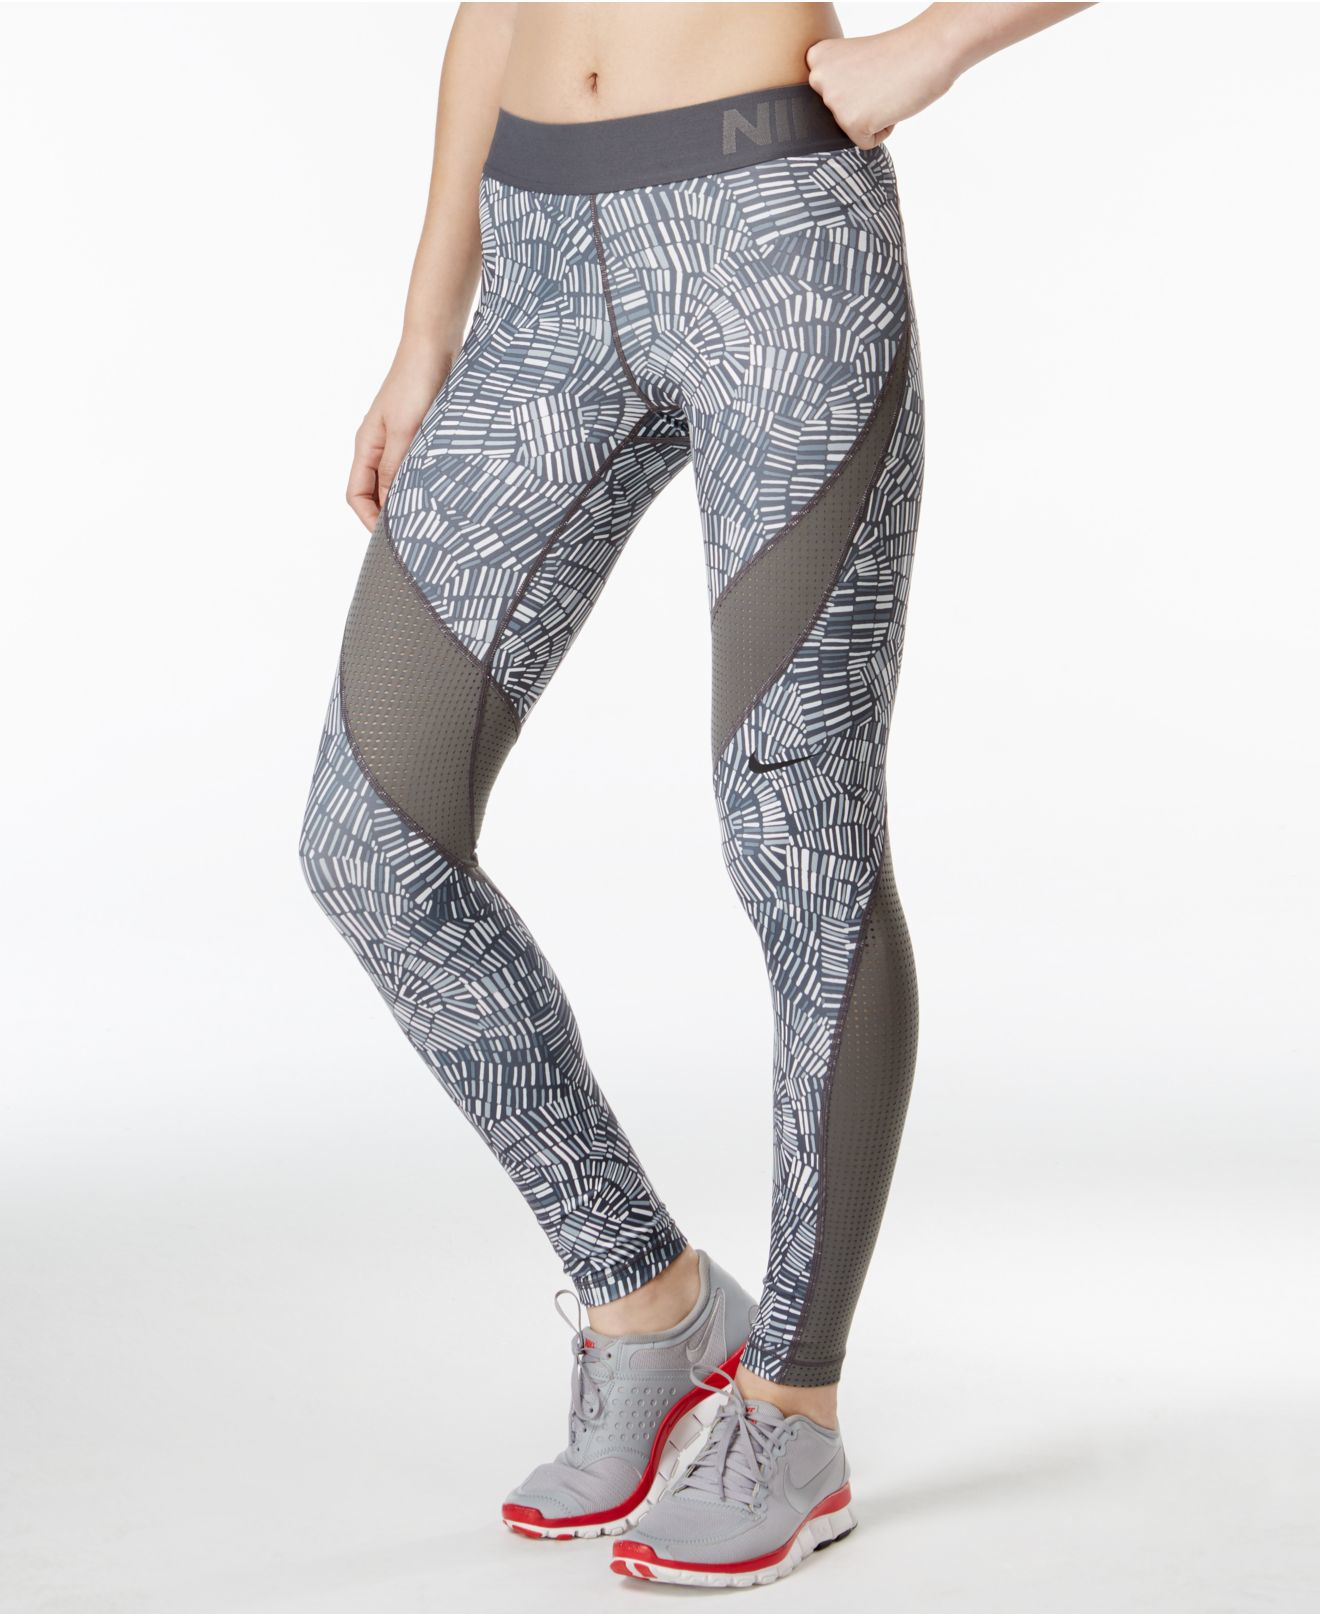 Lyst - Nike Pro Hypercool Dri-fit Tidal Printed Leggings in Gray e83fb8150